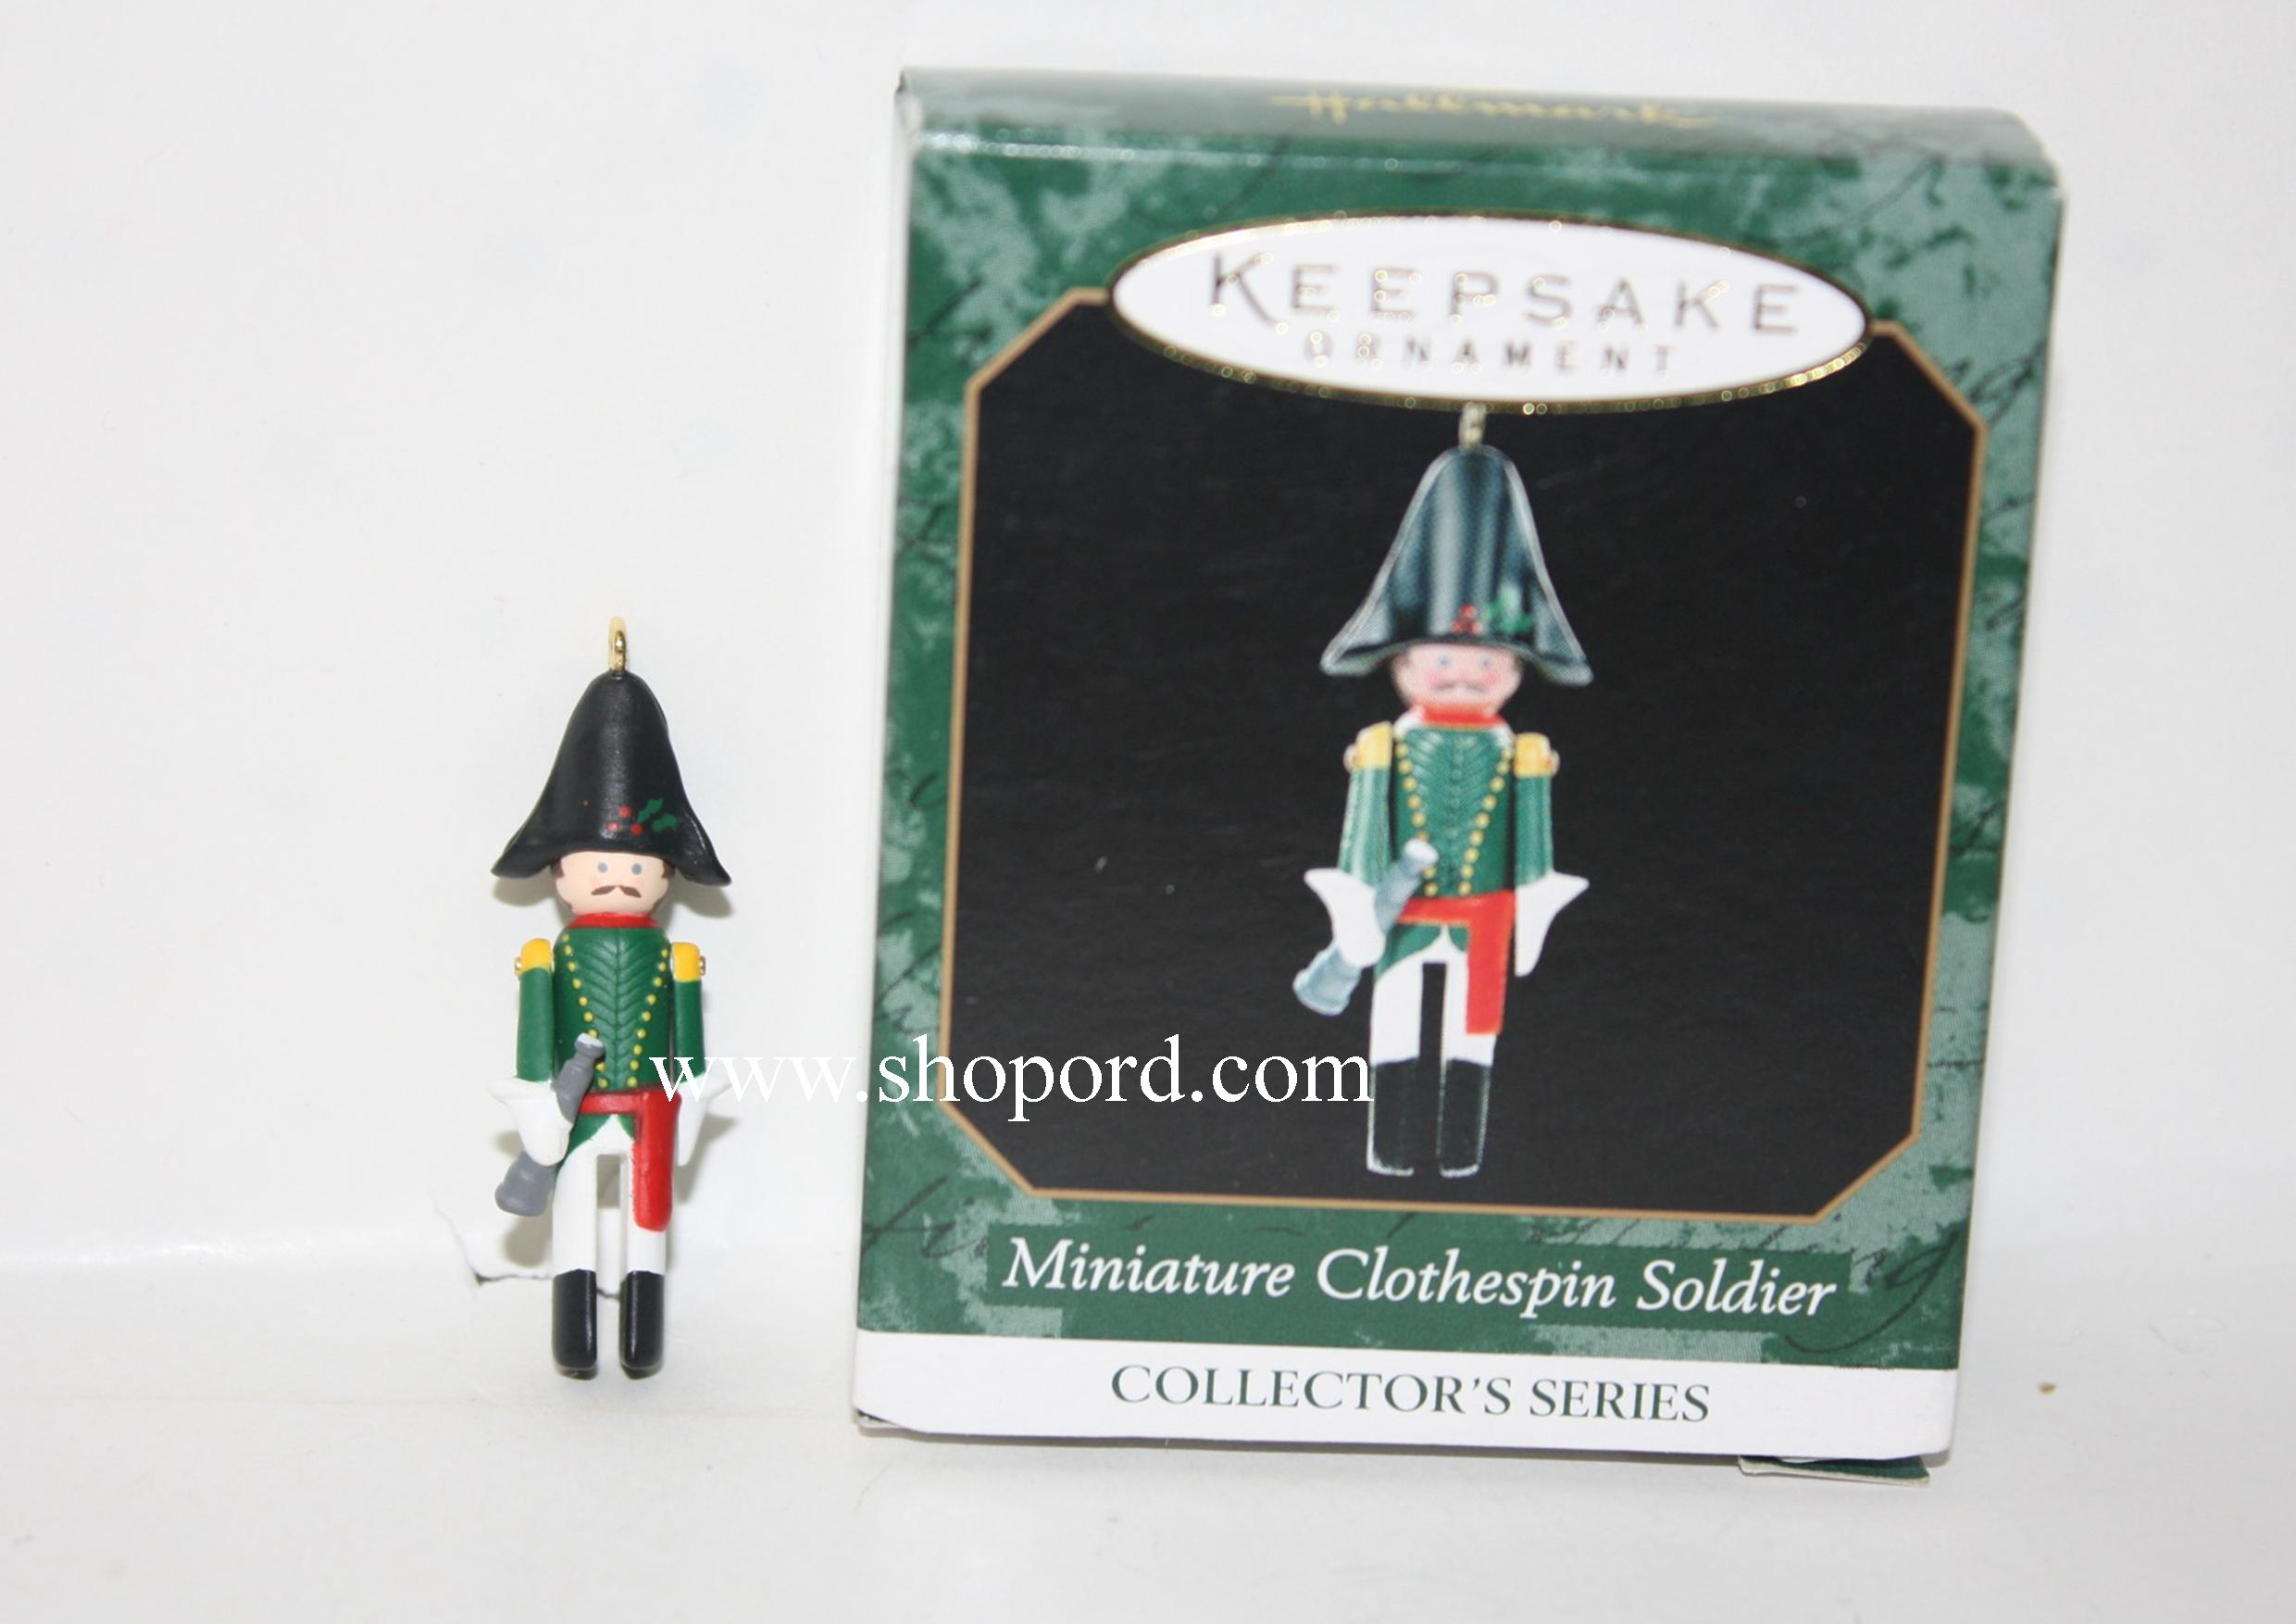 QXM4579 Hallmark Keepsake Ornaments Miniature Clothespin Soldier Fifth in Series French Officer 1999 Hallmark Keepsake Ornament